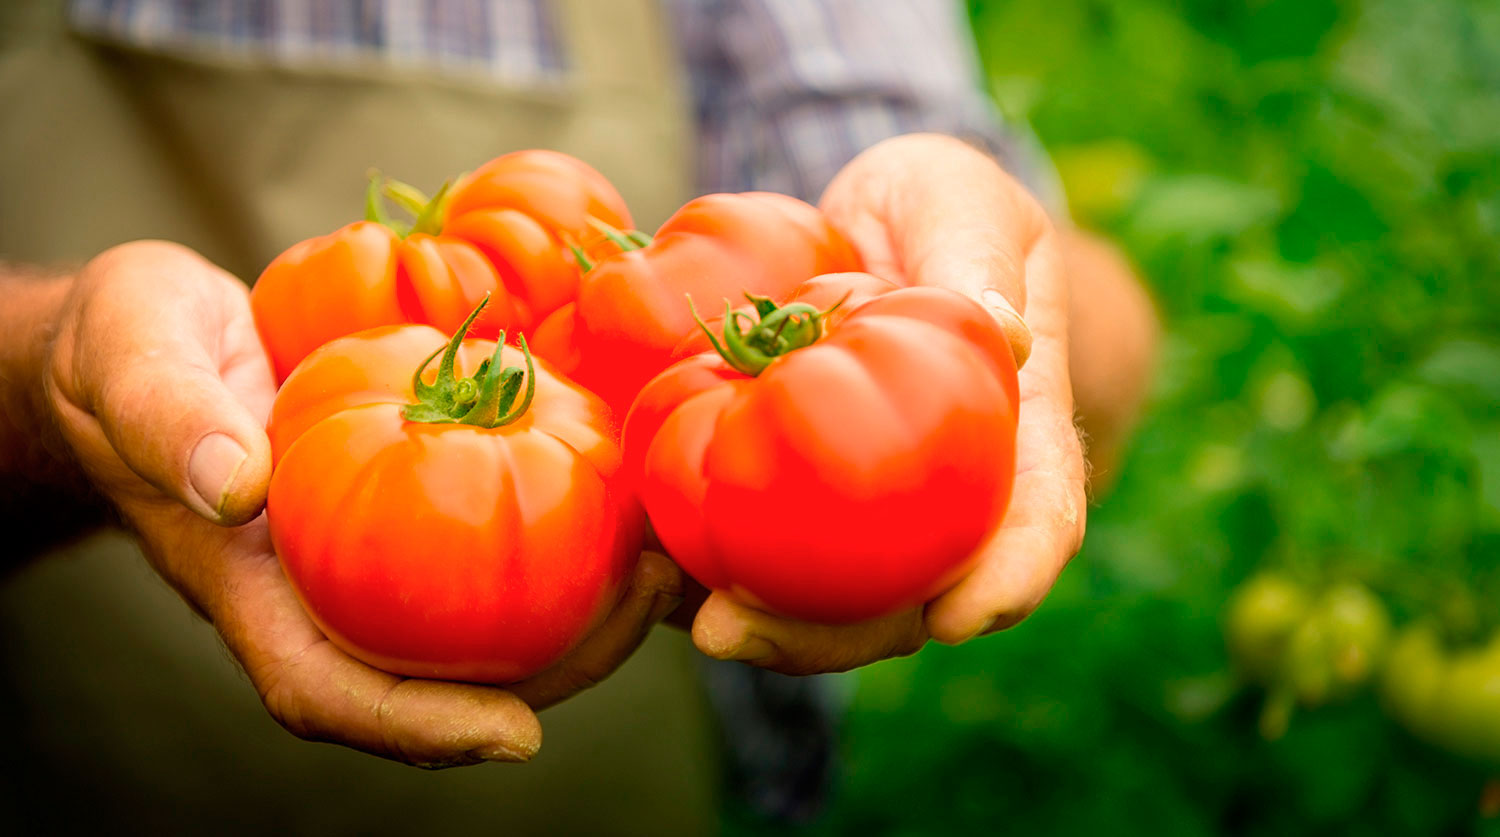 When to pick tomatoes in the greenhouse?